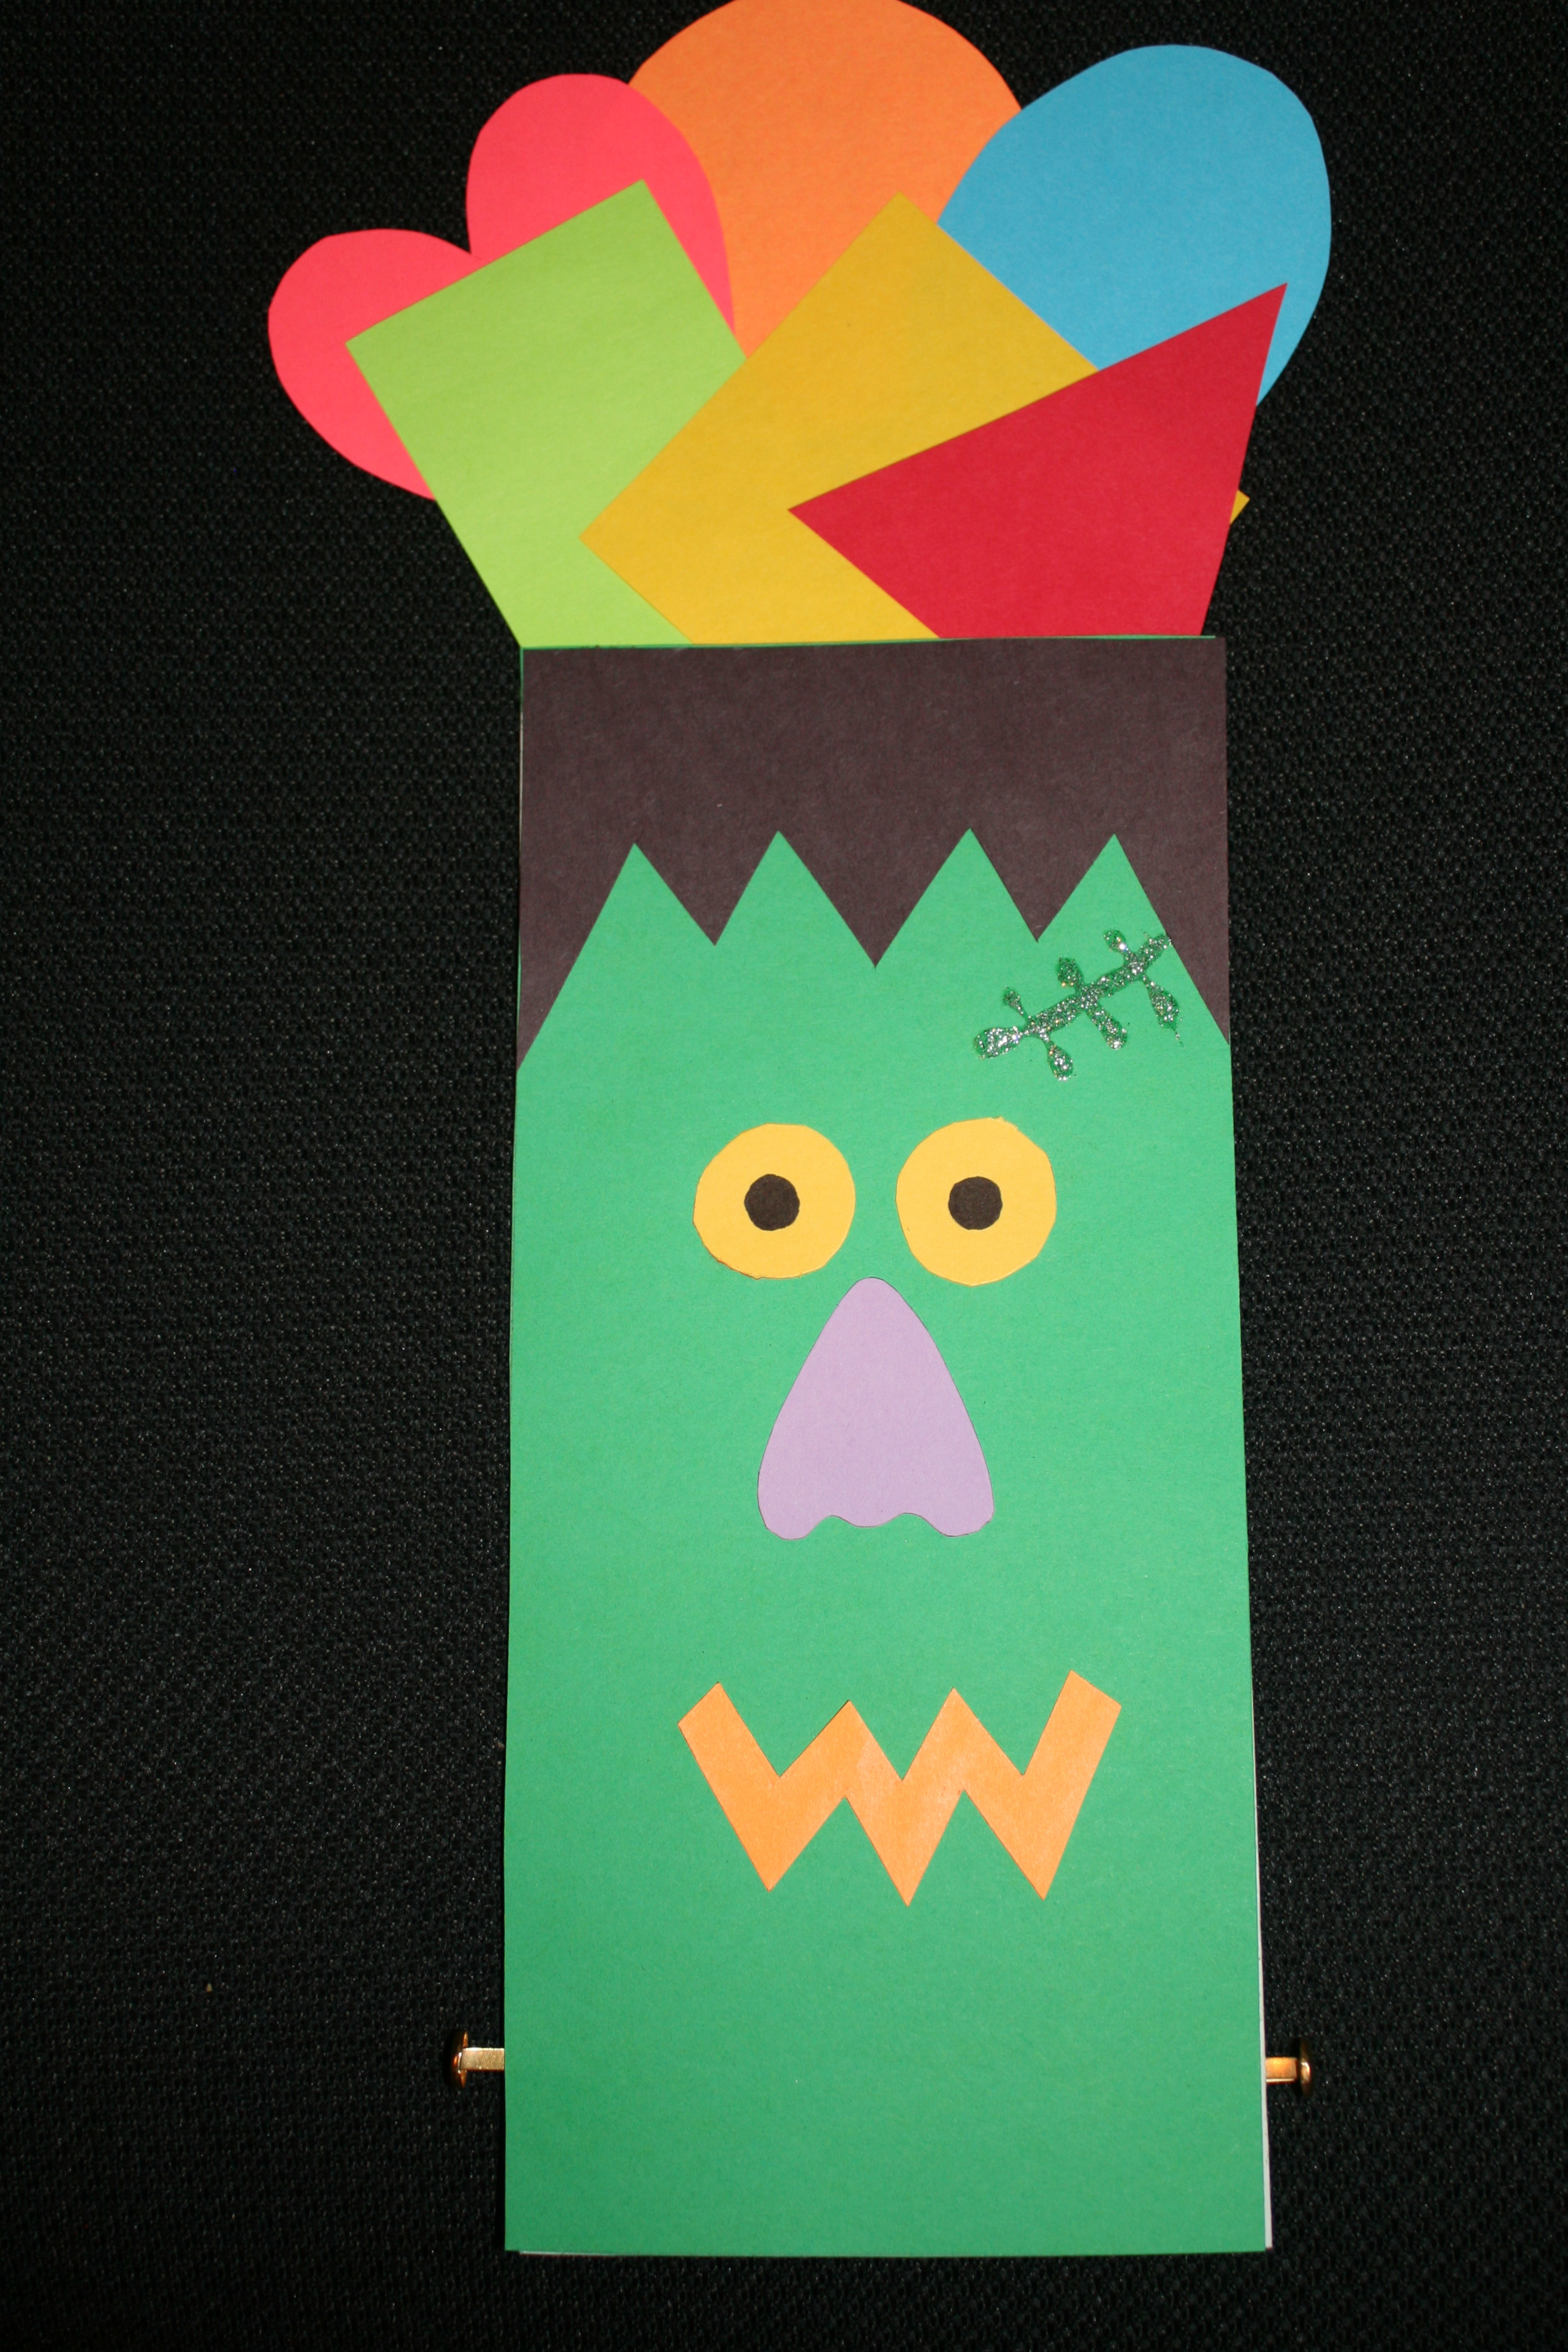 Frankenstein shape envelope, monster activities, monster ideas, halloween ideas, halloween activities, october books, monster books, october bulletin board ideas, monster games, mosnter snacks, go away big green monster activities, go away big green monster ideas, glad monster sad monster ideas, glad monster sad monster activities, monster lessons,